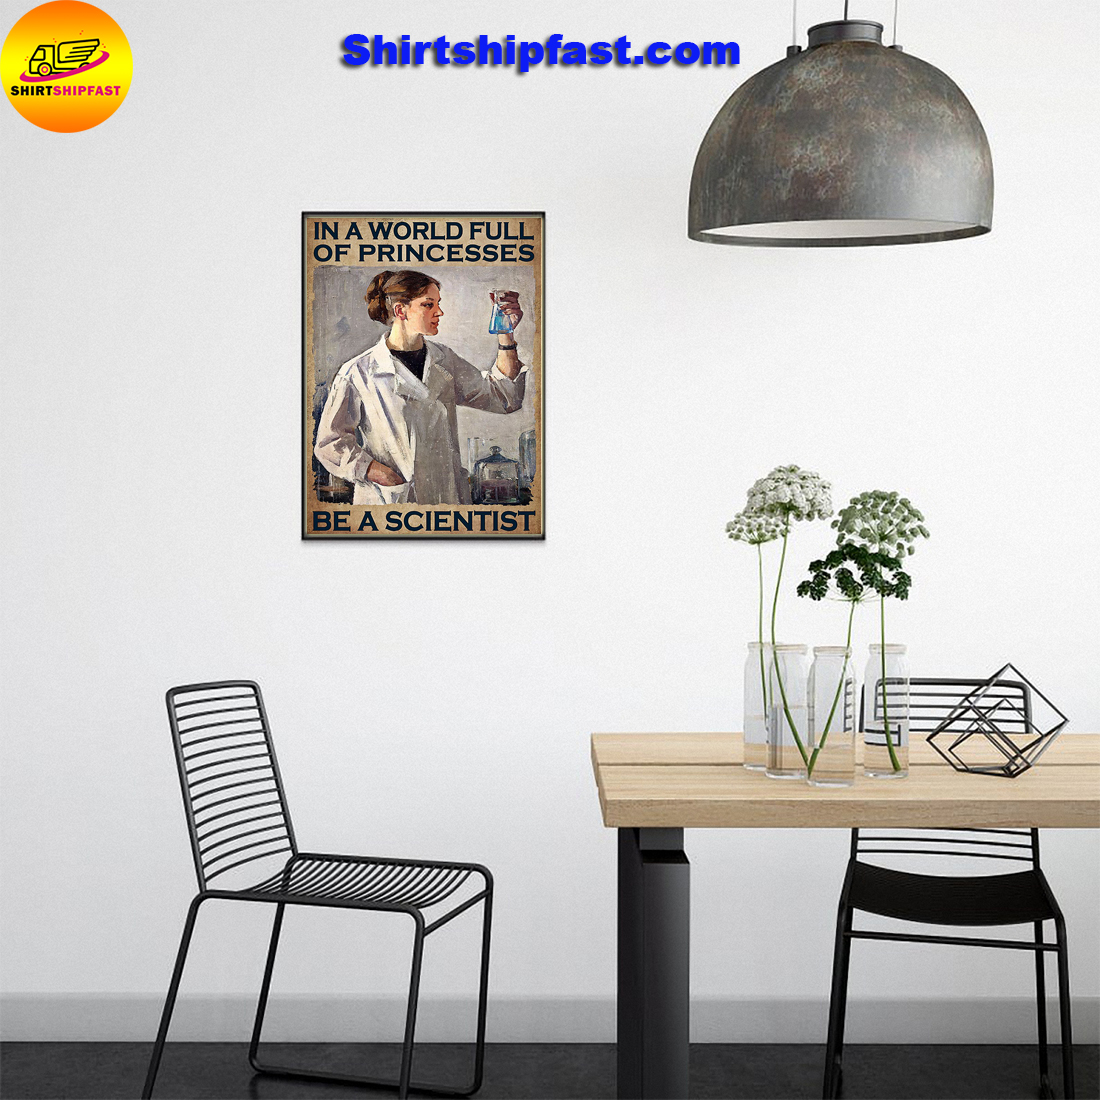 Girl In a world full of princesses be a scientist poster - Picture 2